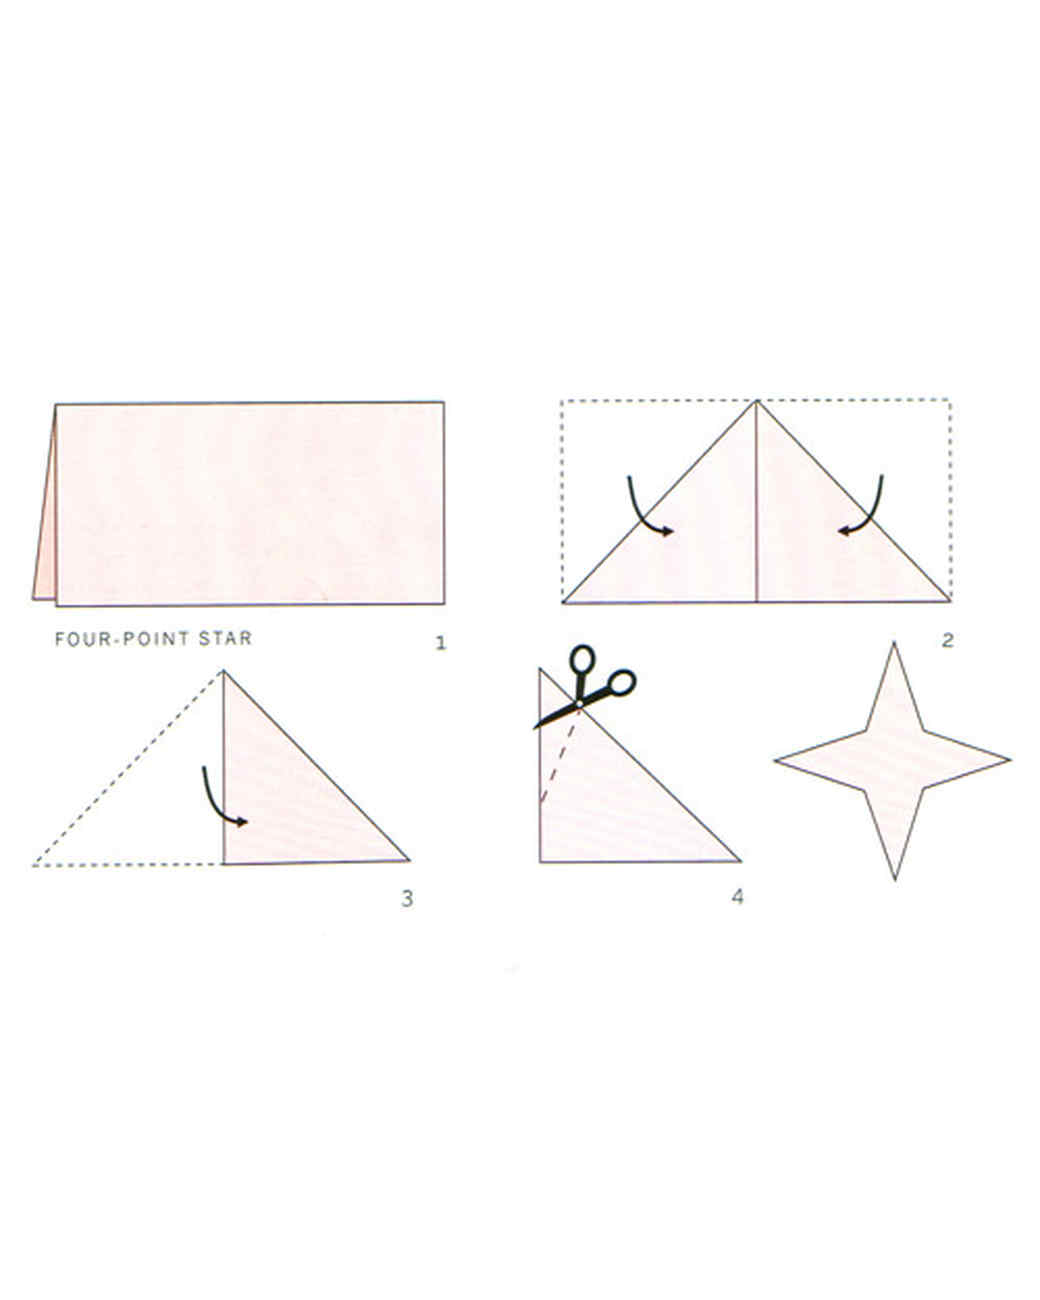 Origami Pop-up Star Folding Instructions - How to fold an Origami ... | 1300x1040